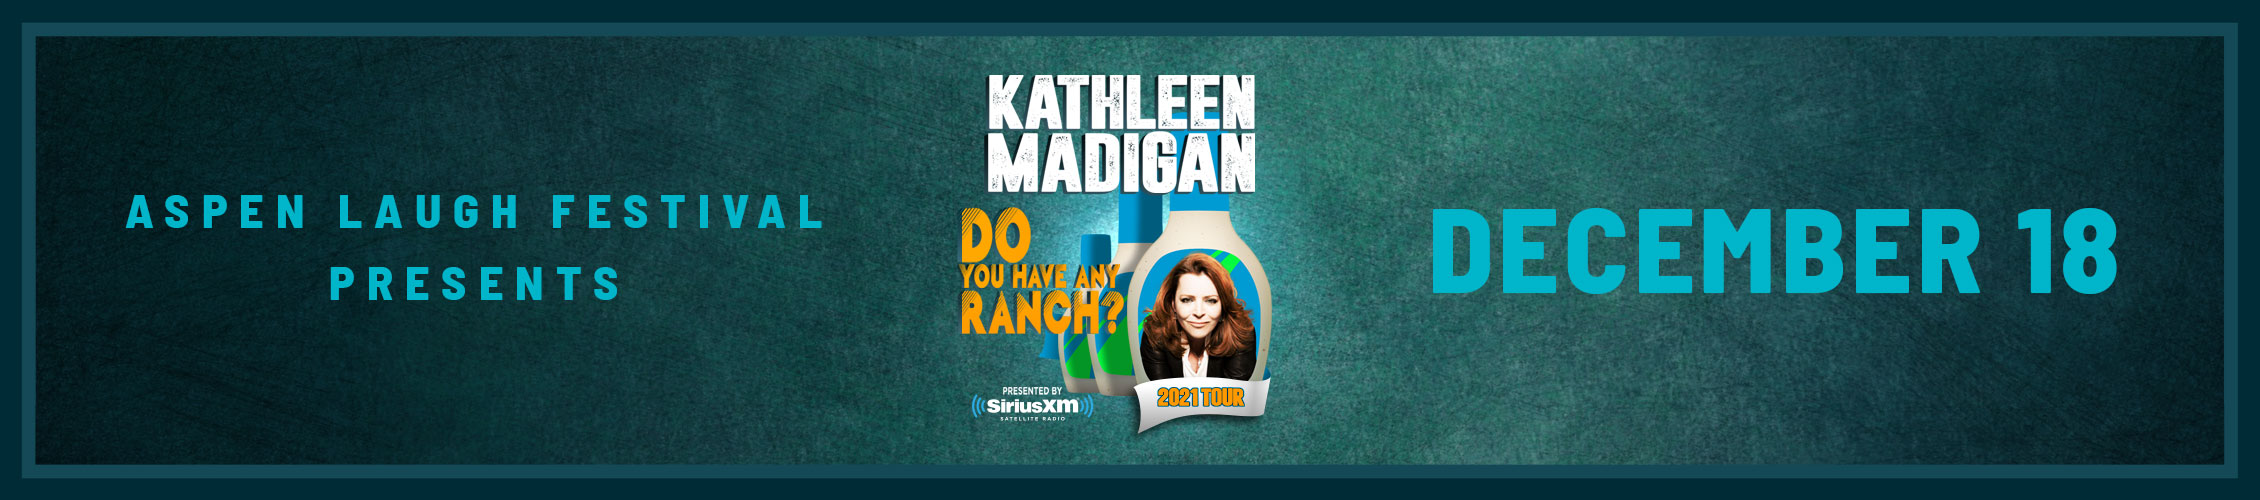 Kathleen Madigan Do you have any ranch?